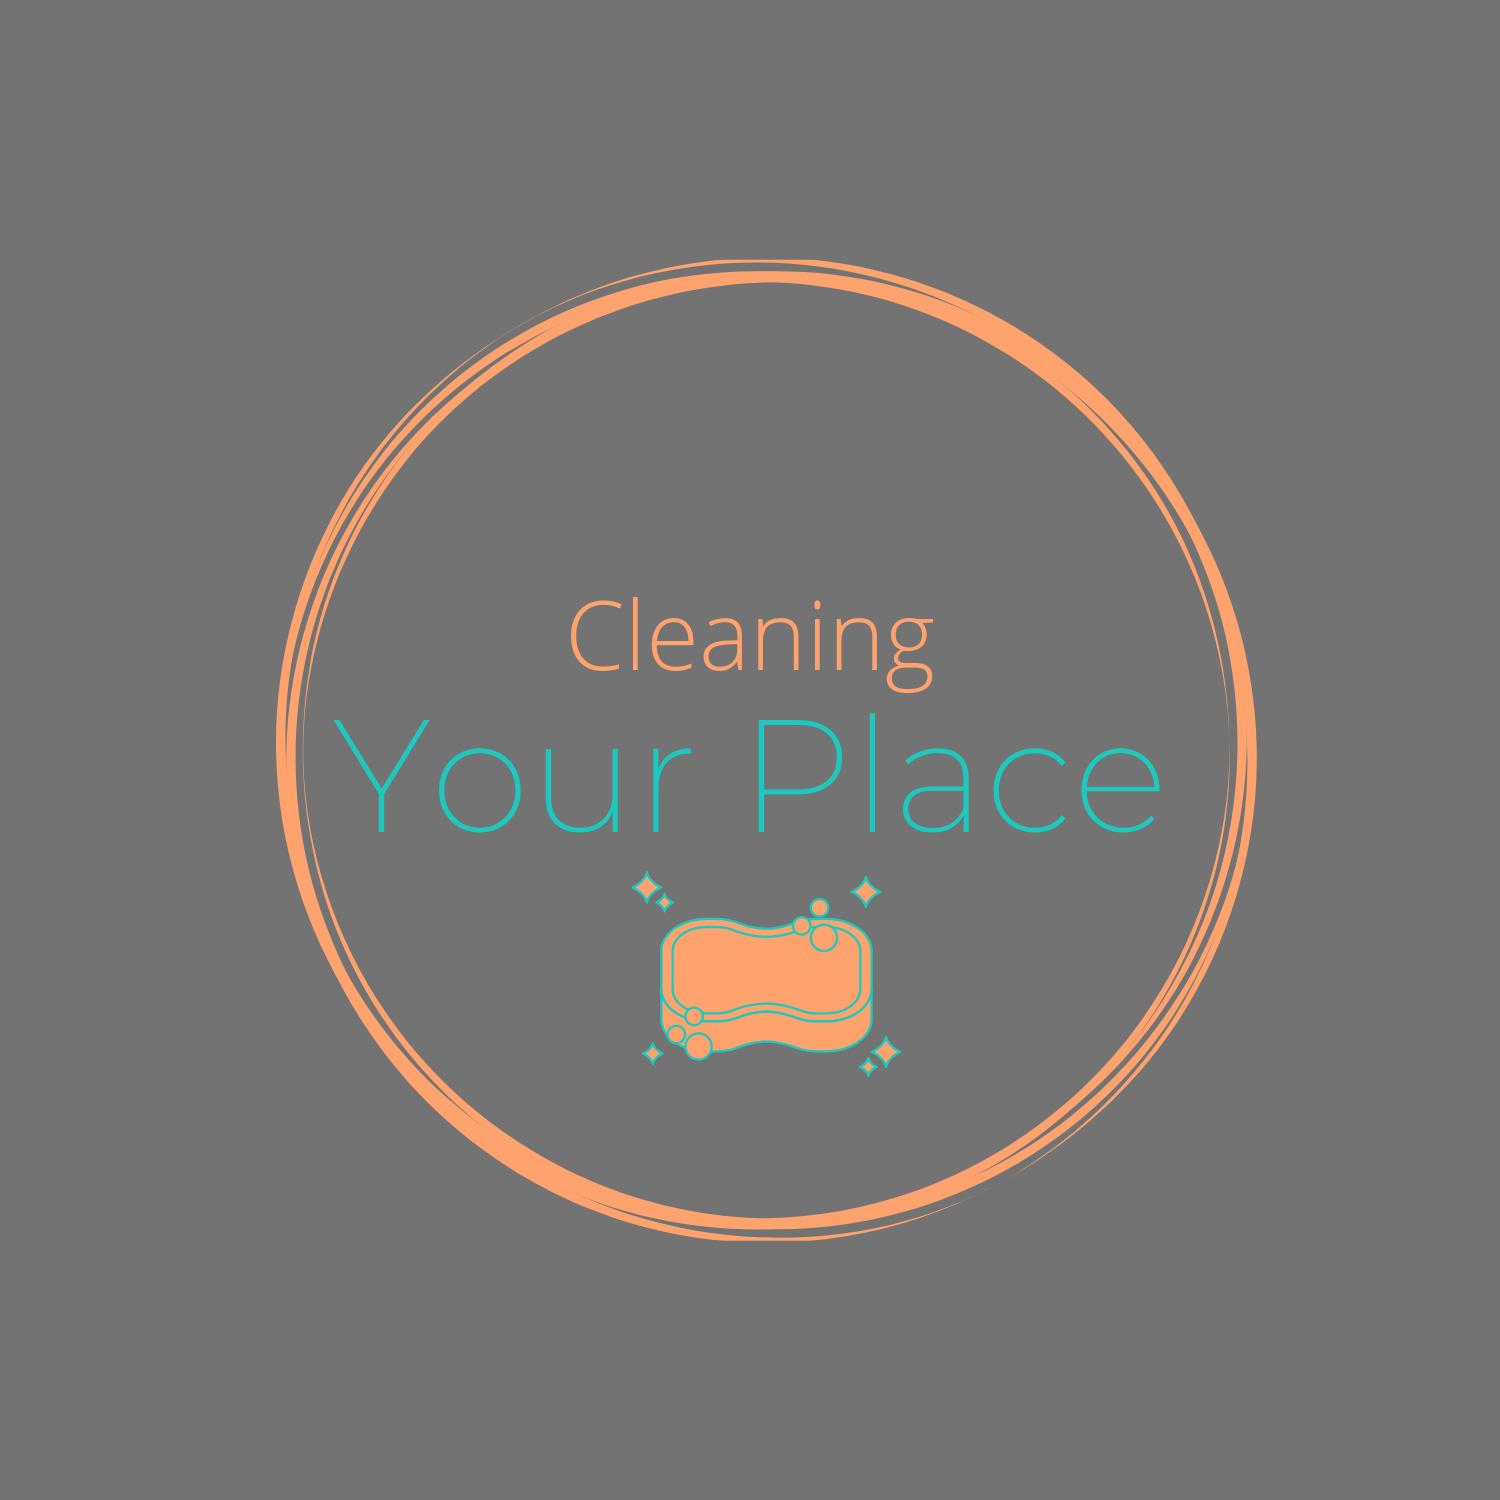 Cleaning Your Place - Your Place Solutions Services